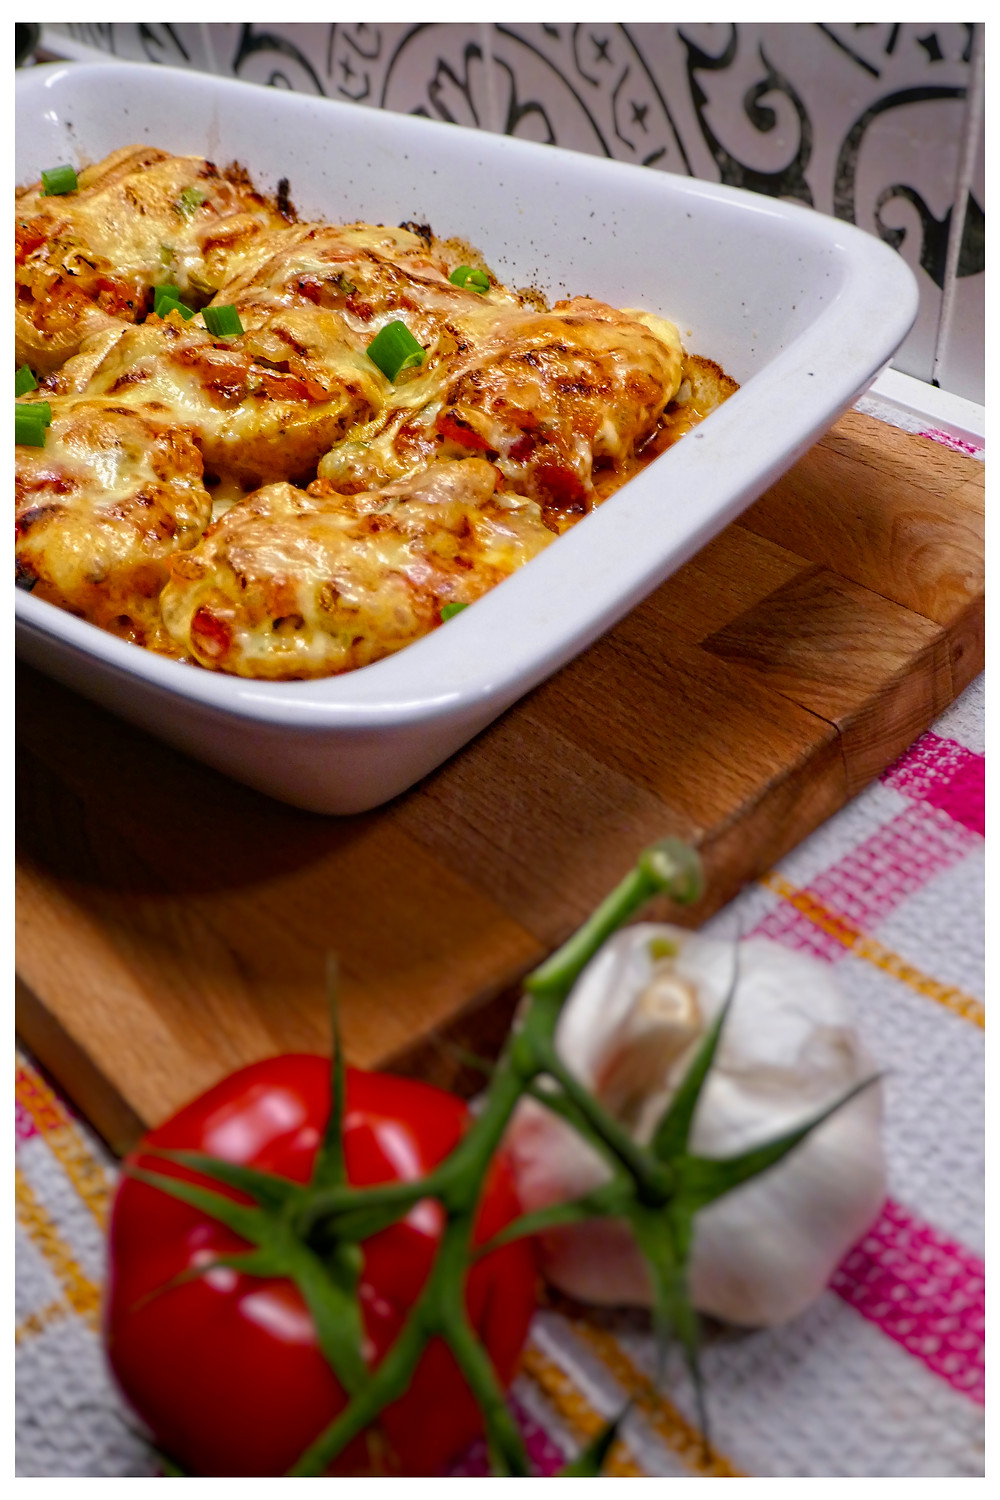 Lemon Pasta with Tomato Salsa - Mostly Beige - Recipes for picky eaters